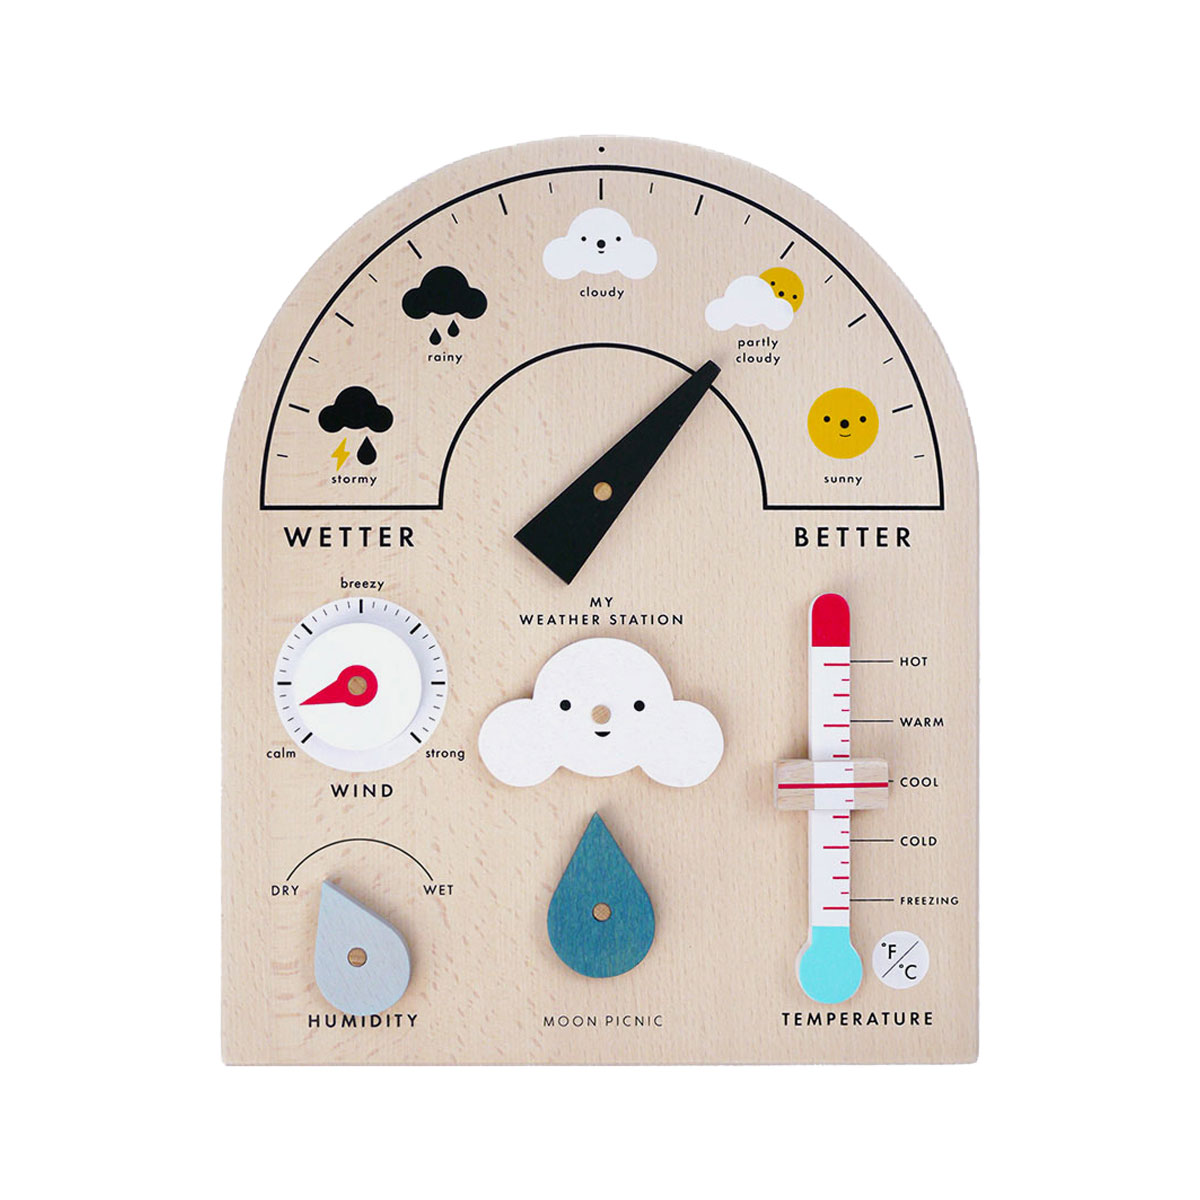 Moon Picnic My Weather Station Toy